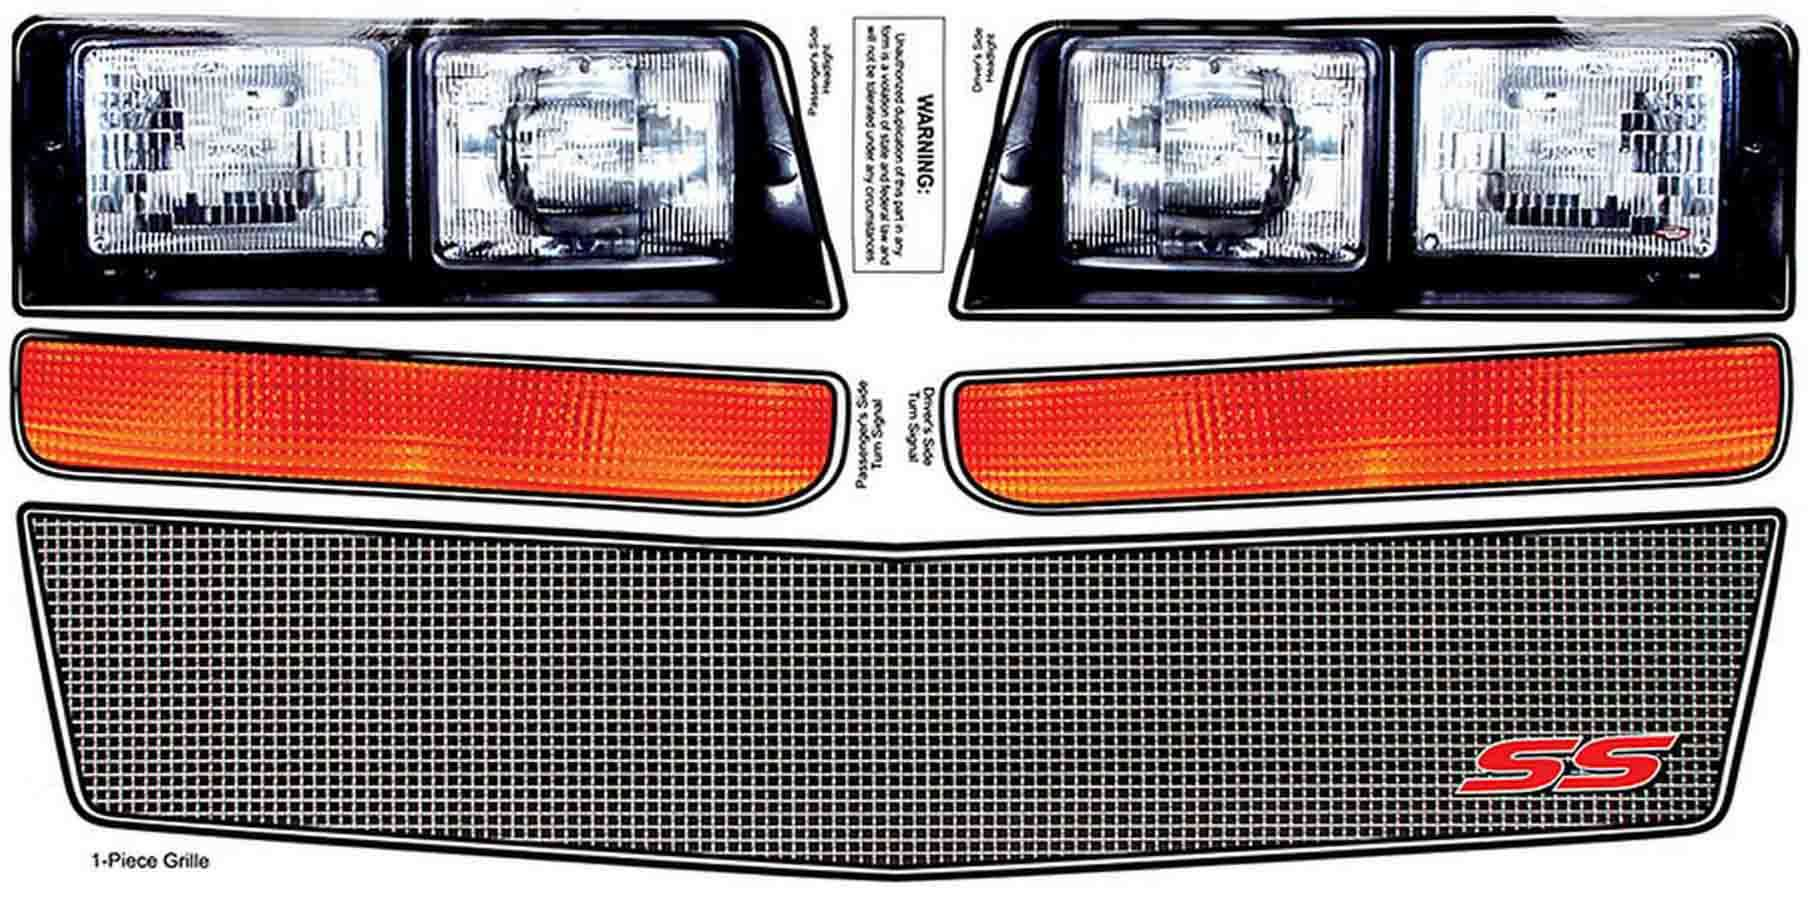 Allstar Performance M/C SS Nose Decal Kit Mesh Grille 1983-88